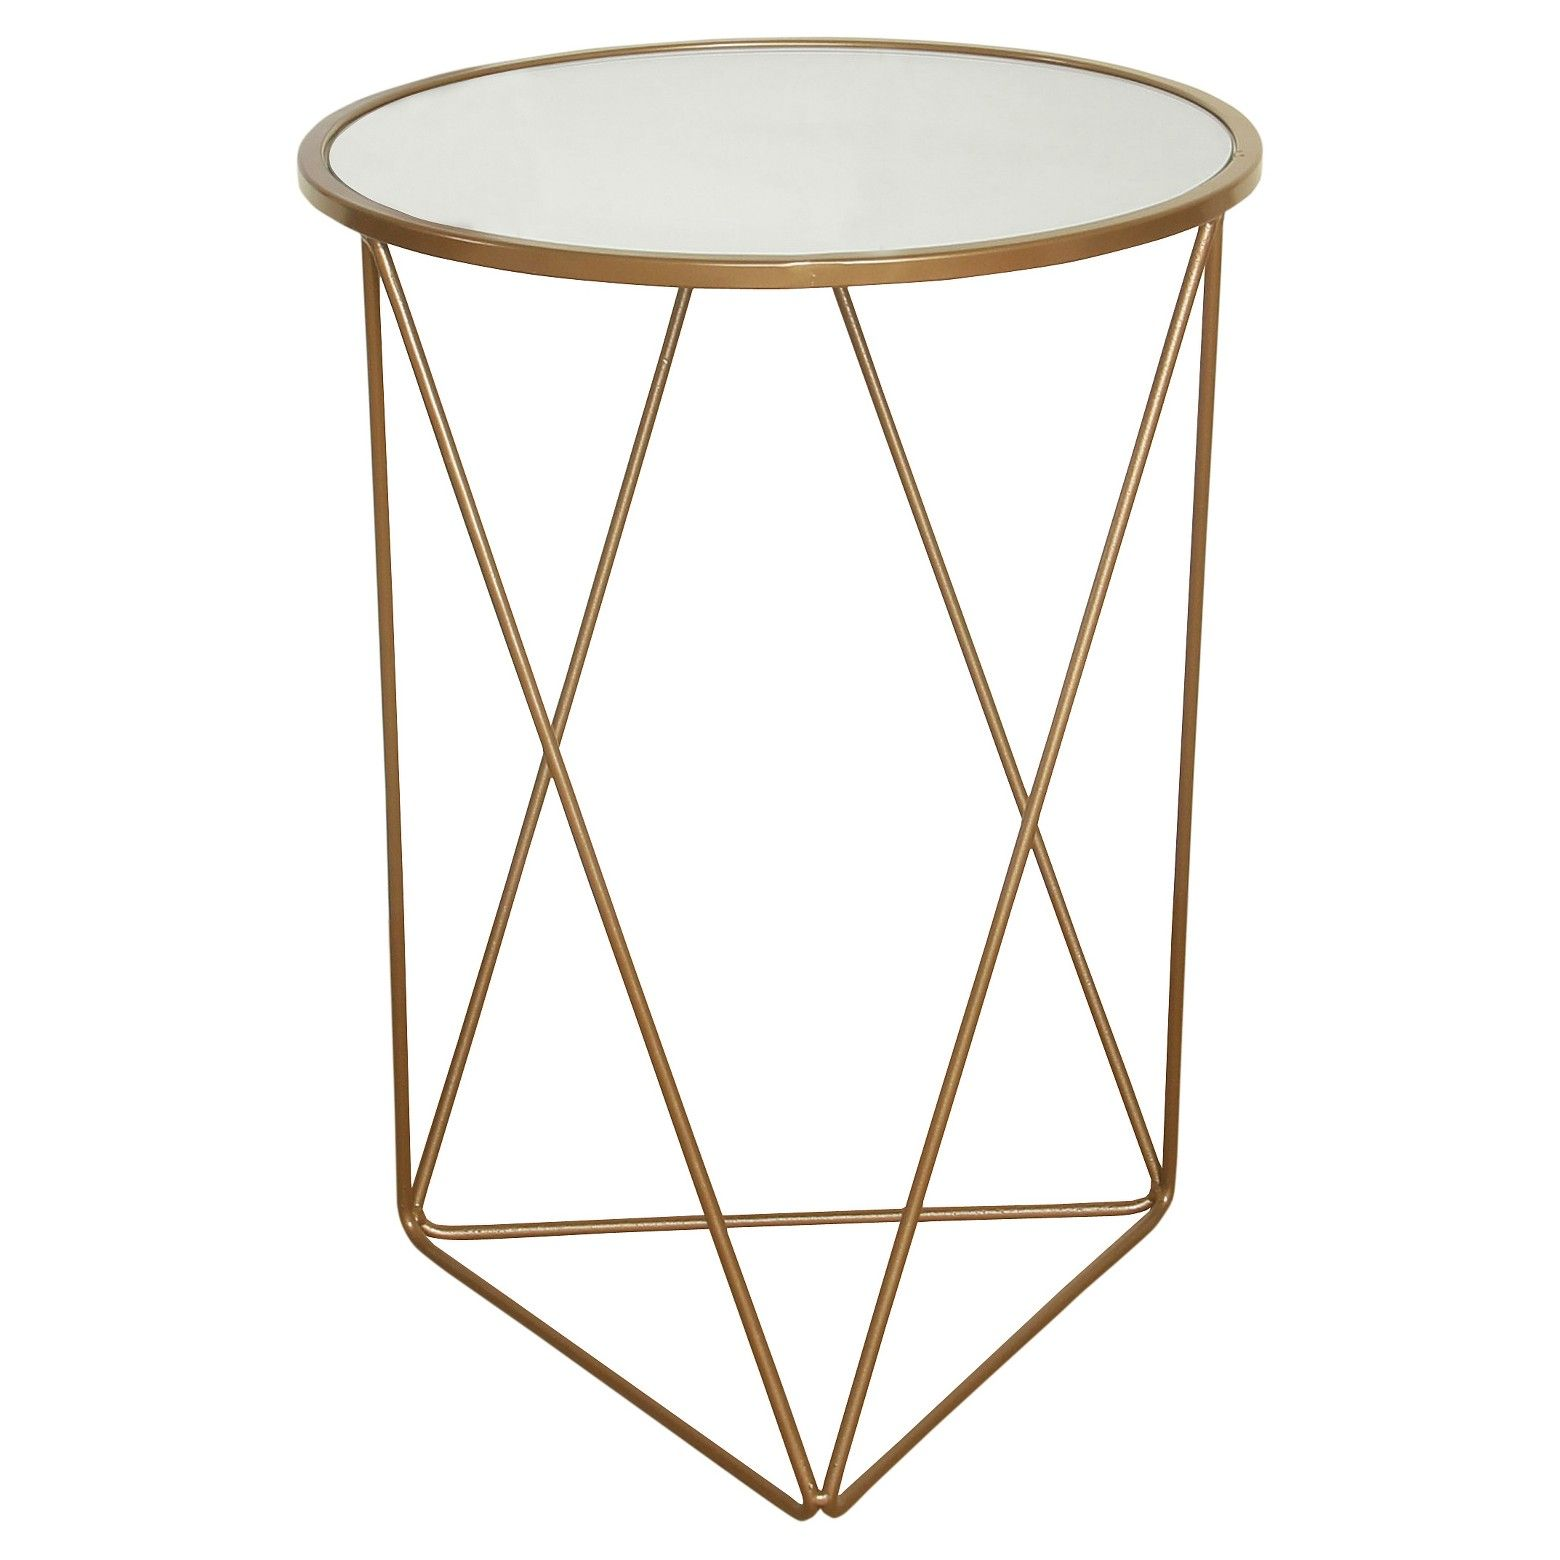 bull circular glass table topbrbull gold metal frame brbull accent perfect size for end night standbrbrthe ndash coffee west elm couch shower curtains rustic chic tables tuscan